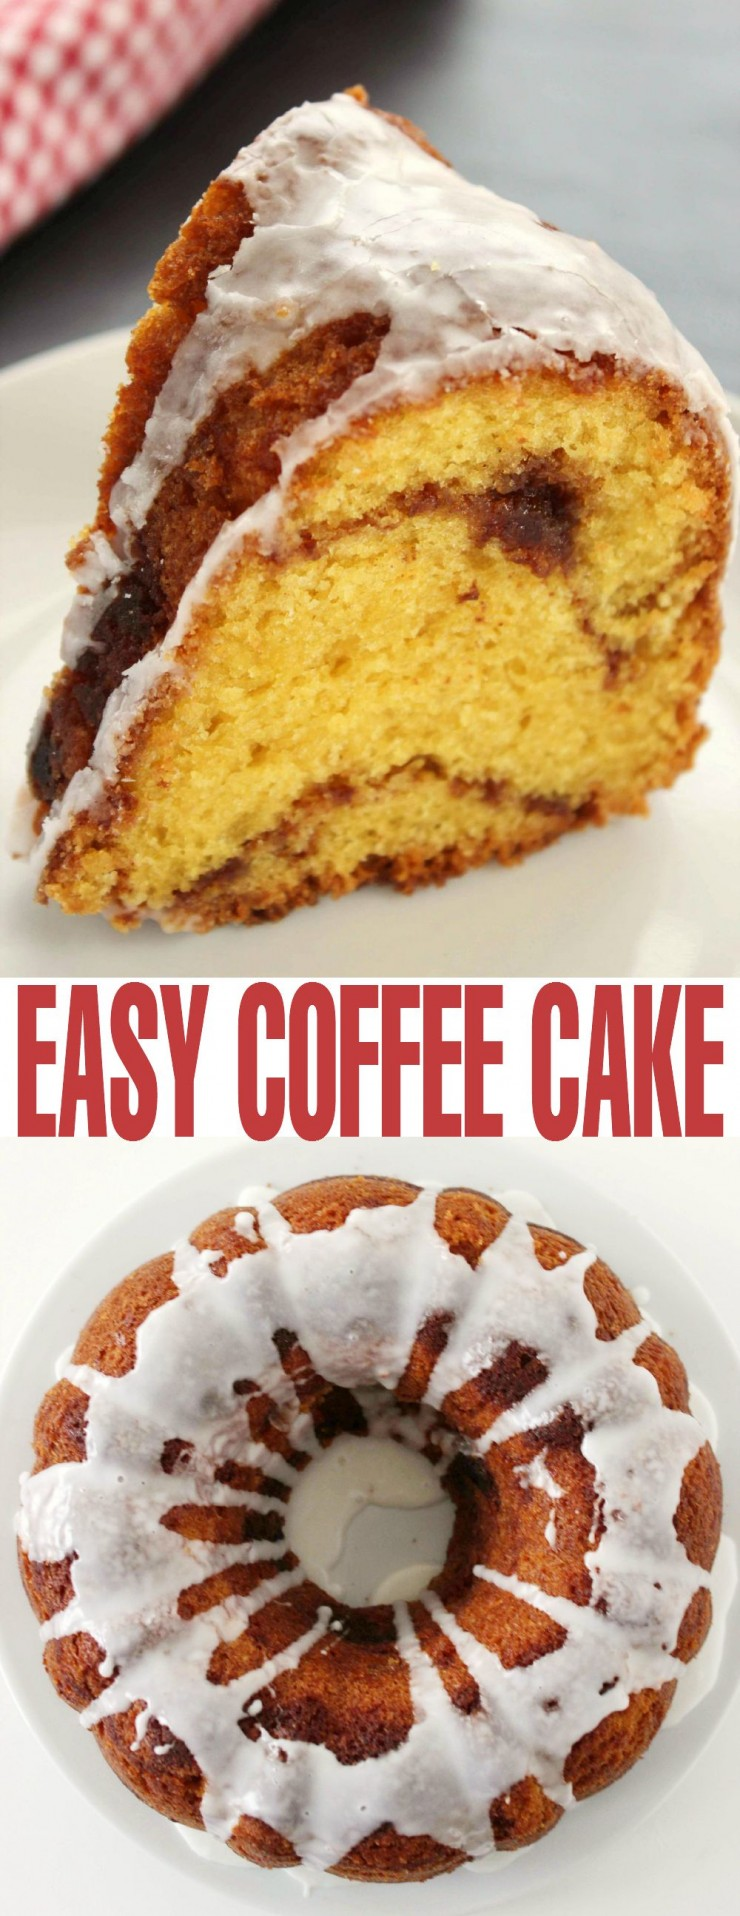 You won't believe just how easy this coffee cake recipe is to whip up.  This is a coffee cake recipe literally anyone can follow.